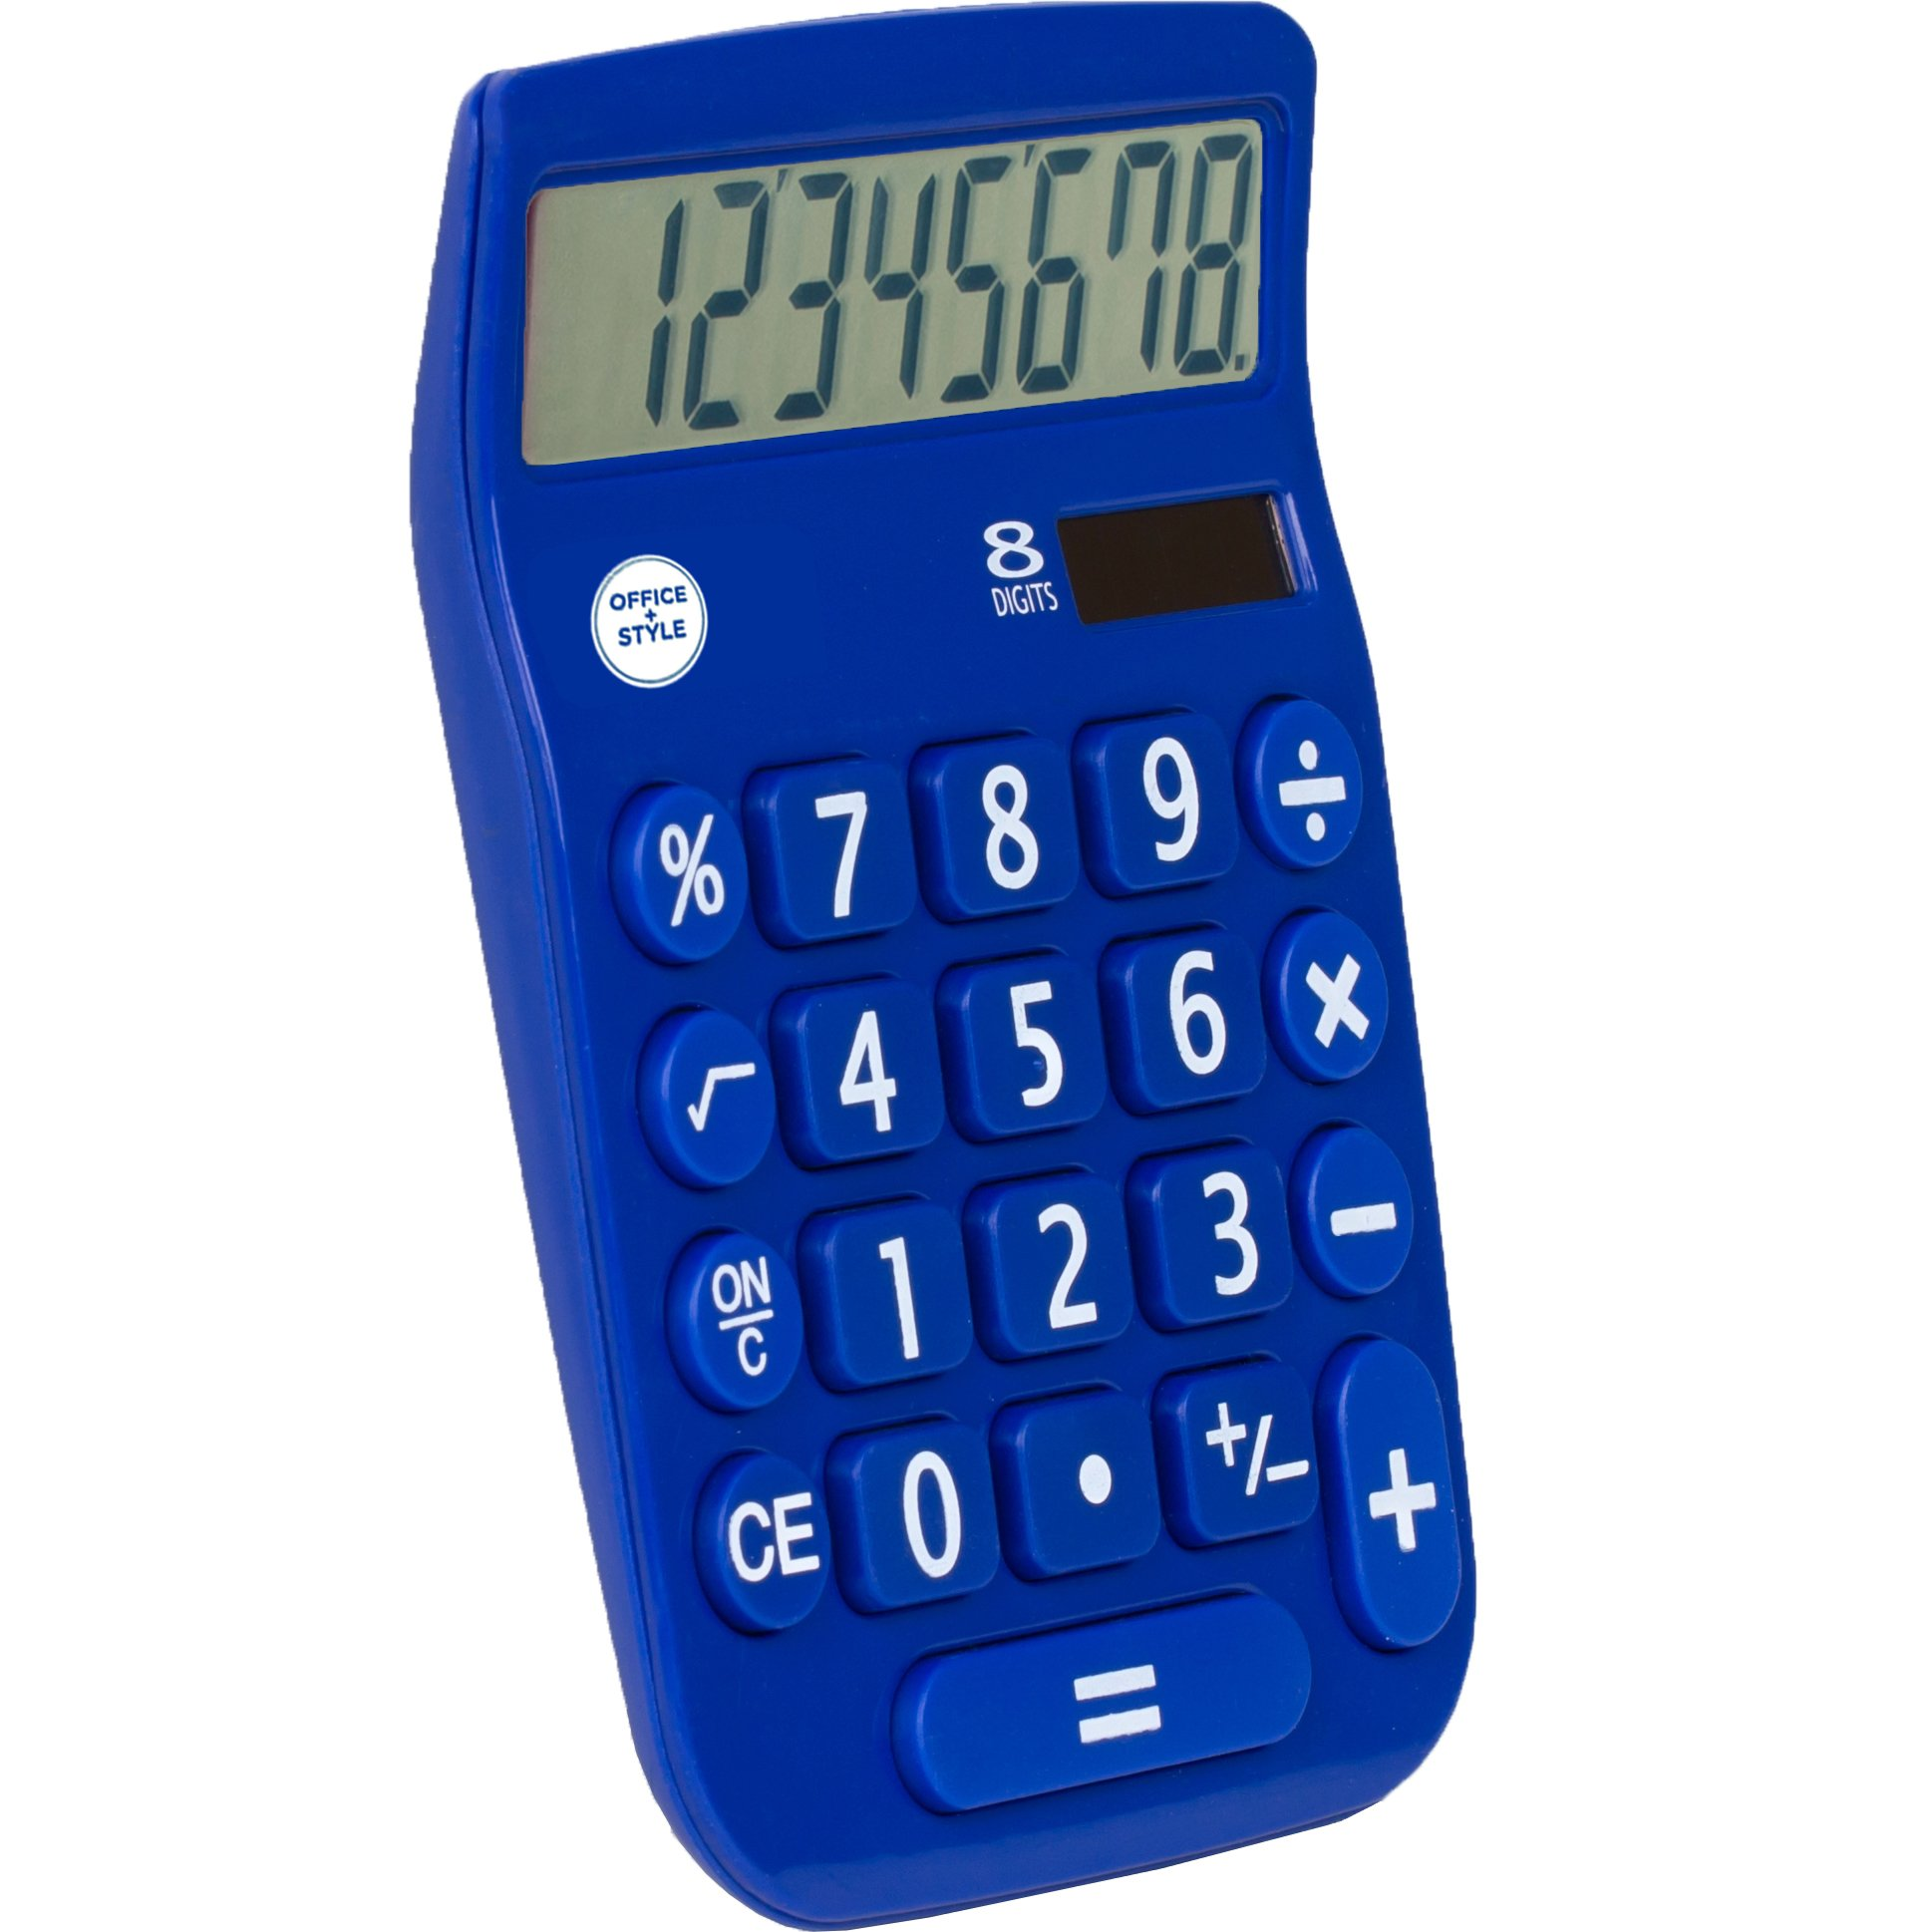 Office + Style 8 Digit Dual Powered Calculator with Large LCD Display, Blue (Pack of 6) by Office Style (Image #3)